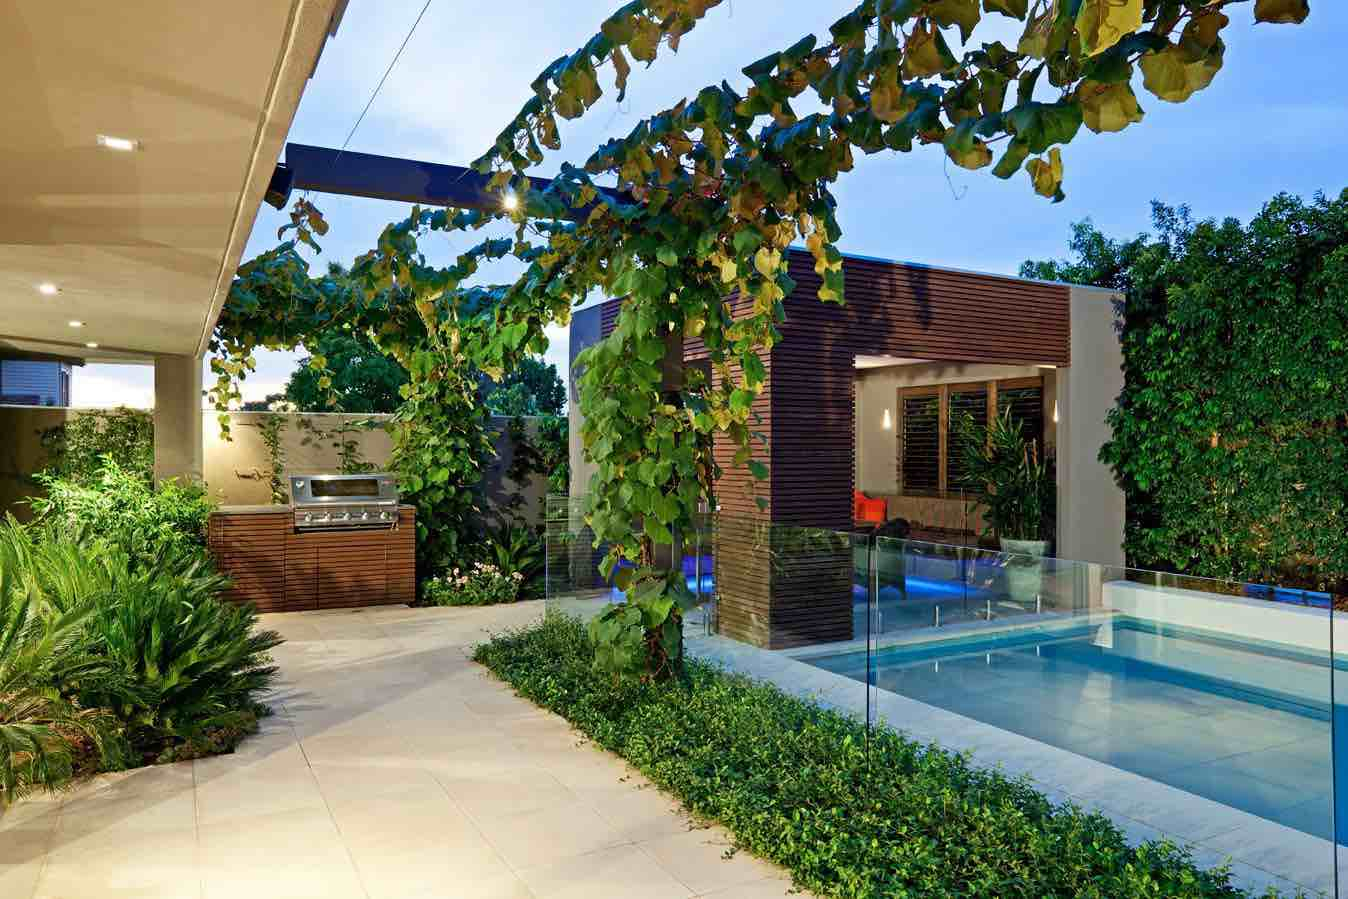 41 backyard design ideas for small yards worthminer Backyard design pictures